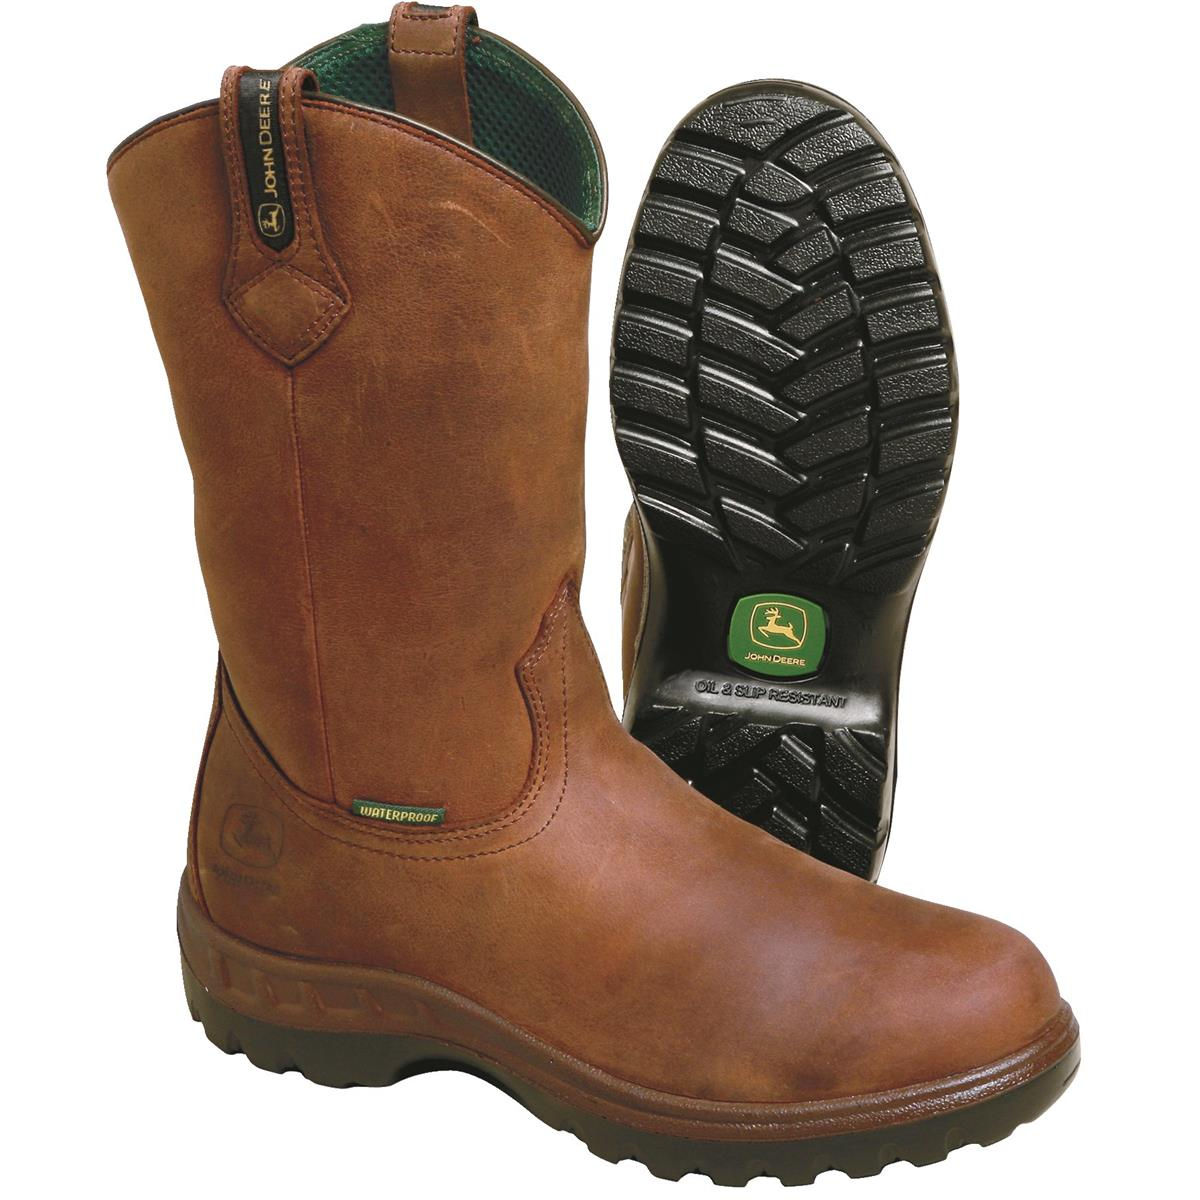 Wearing John Deere boots for men